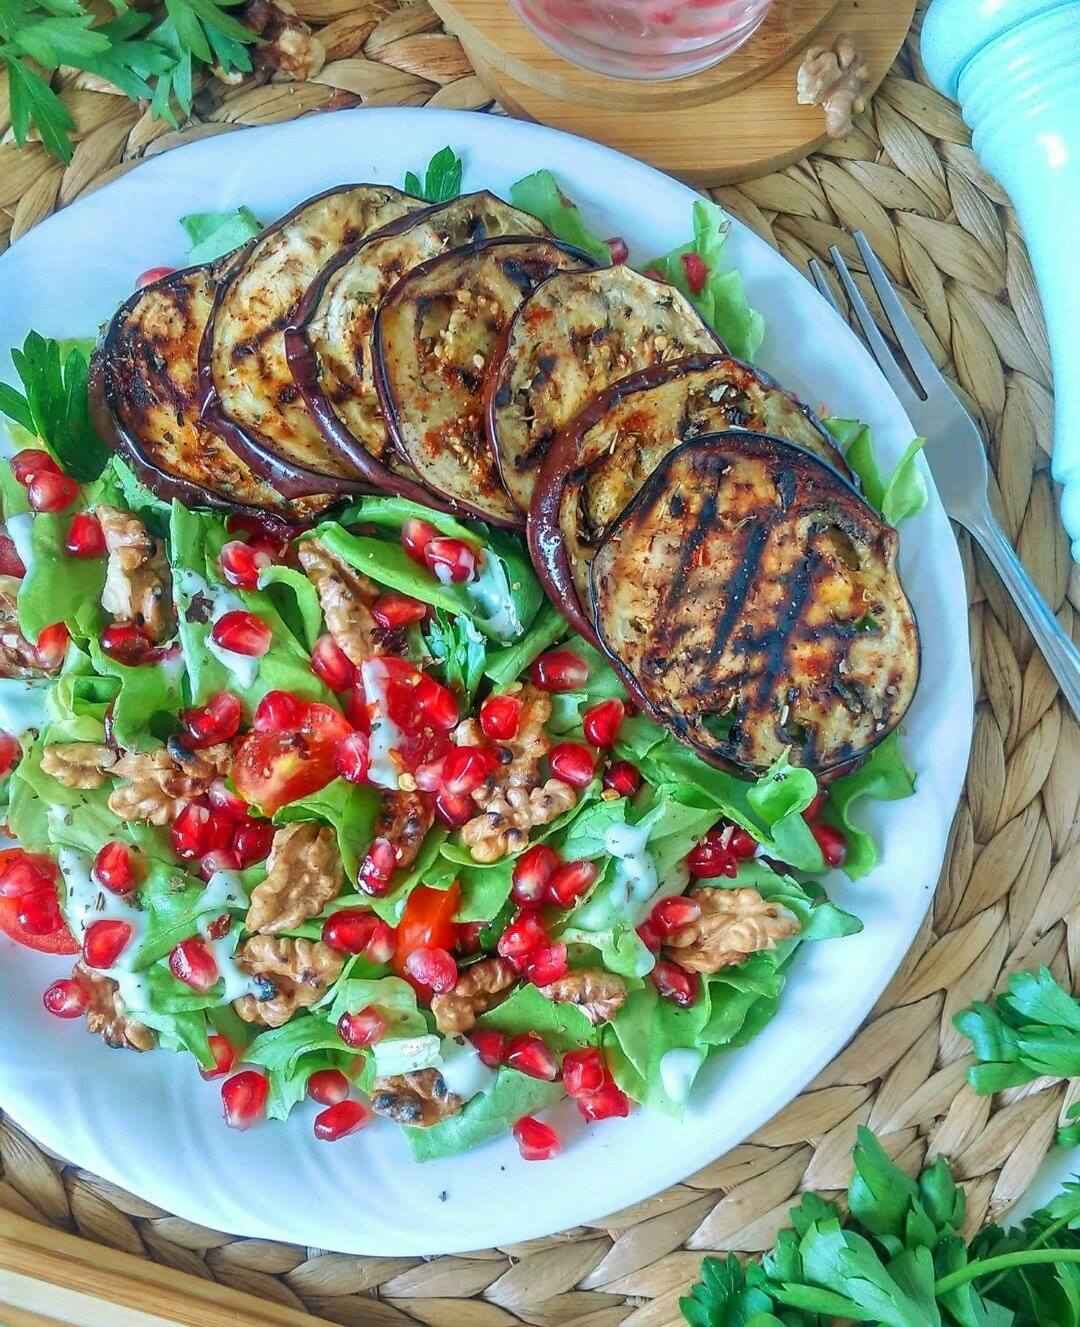 Grilled Eggplant Salad with Walnuts and Pomegranate